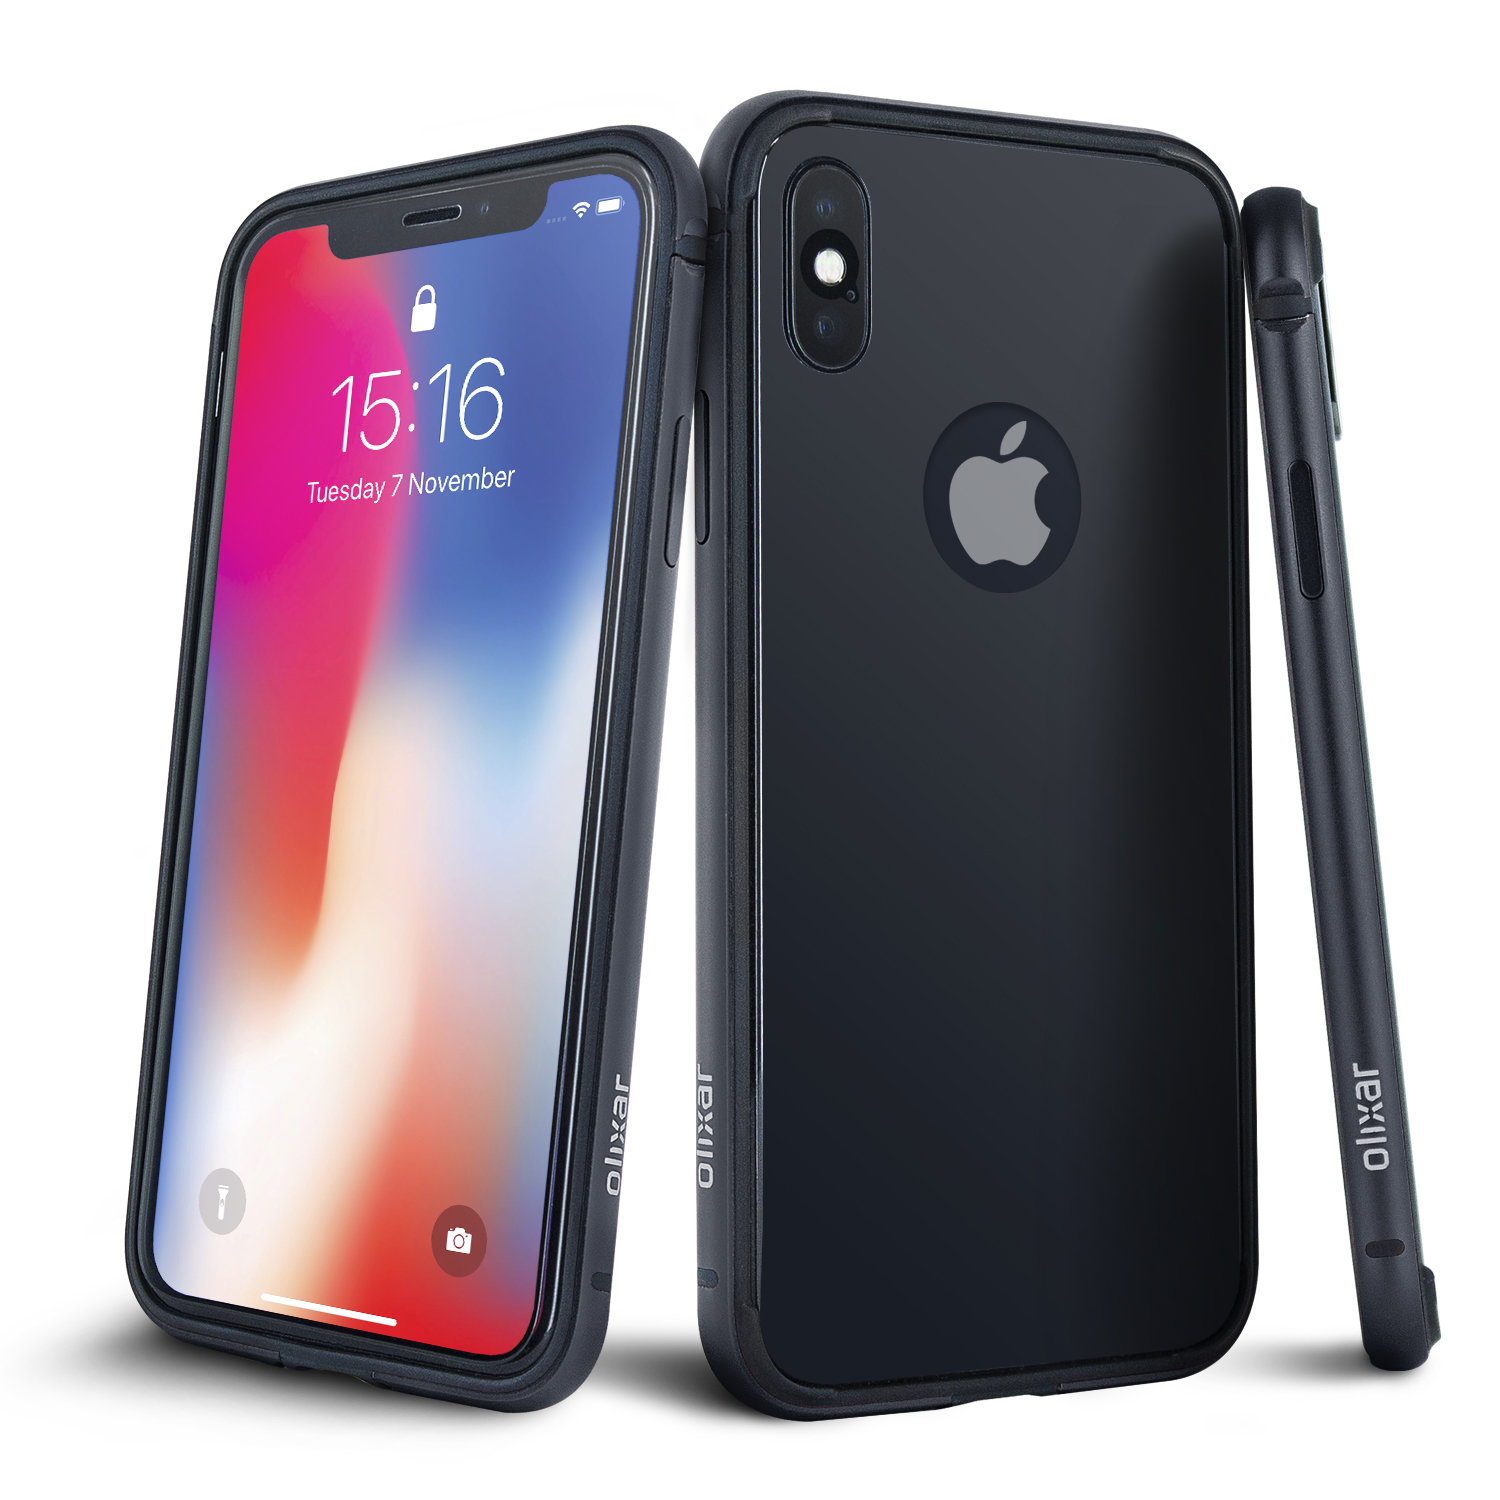 competitive price d2ea6 bc7b4 iPhone X Case - Olixar Helix Sleek 360 Protection - Space Grey